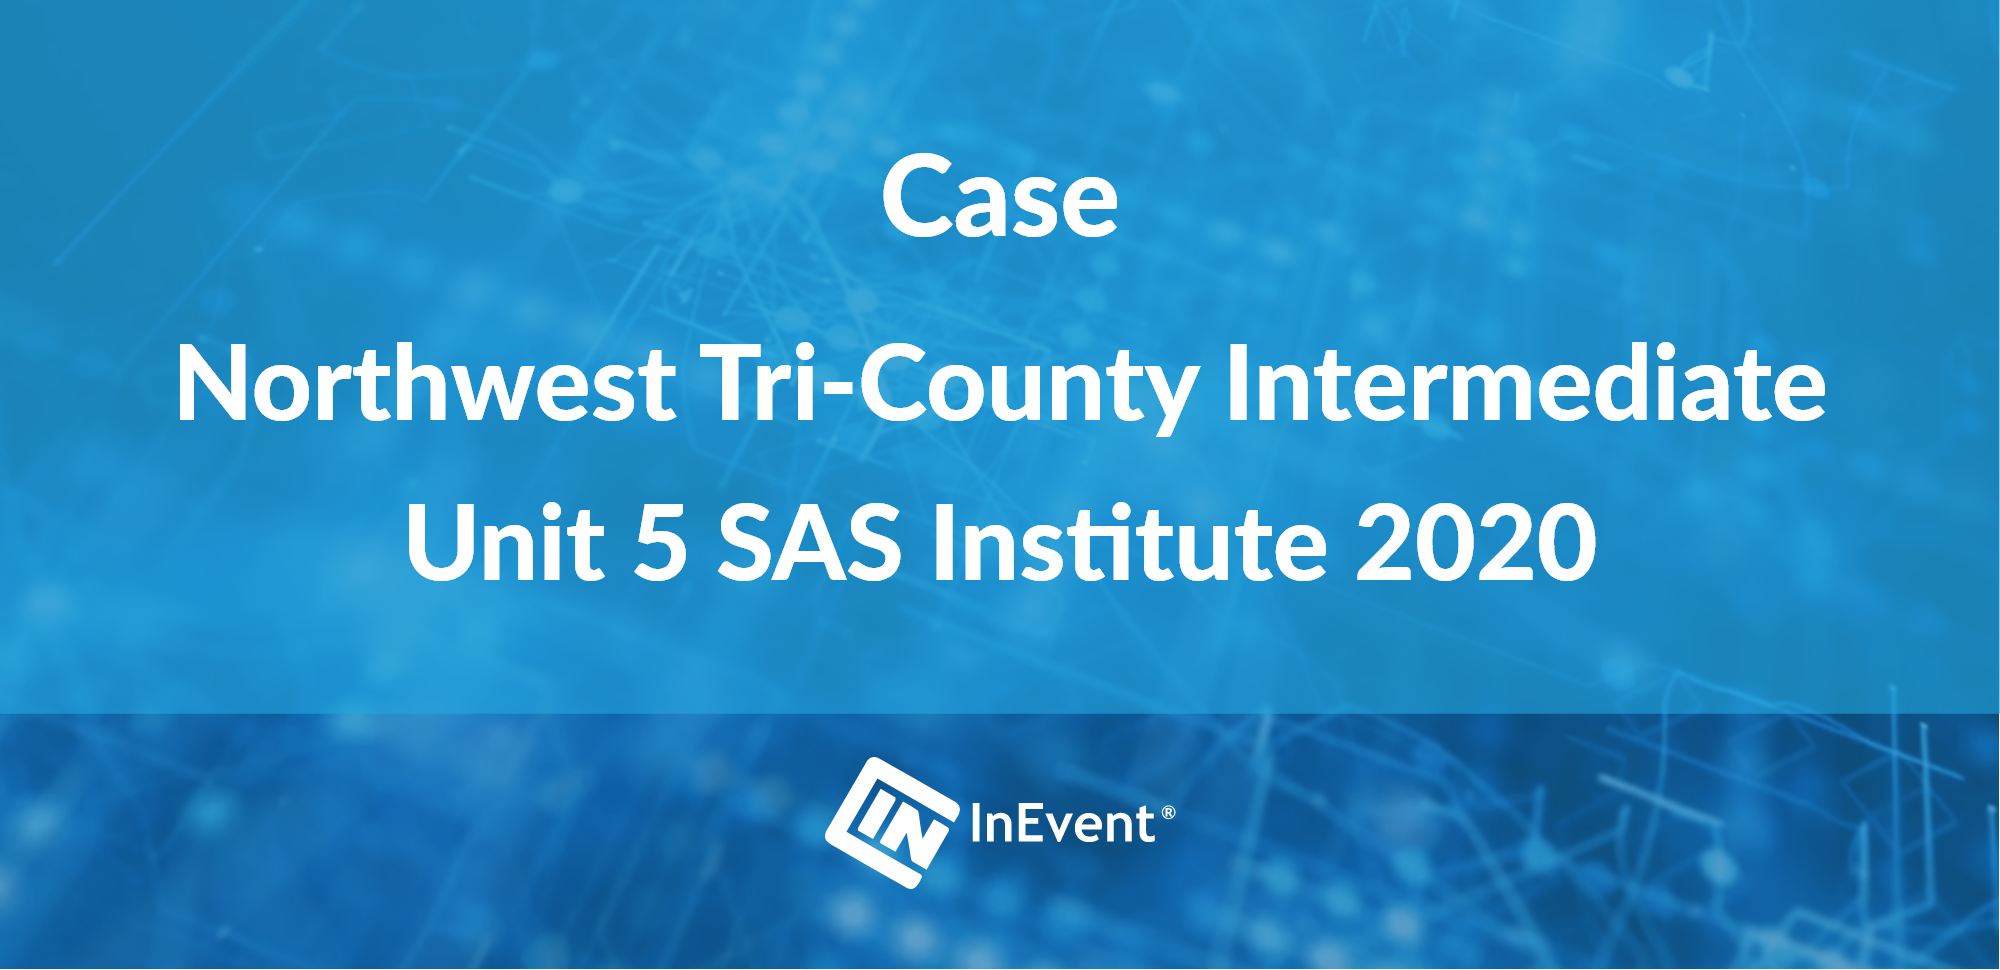 Northwest Tri-County Intermediate Unit 5